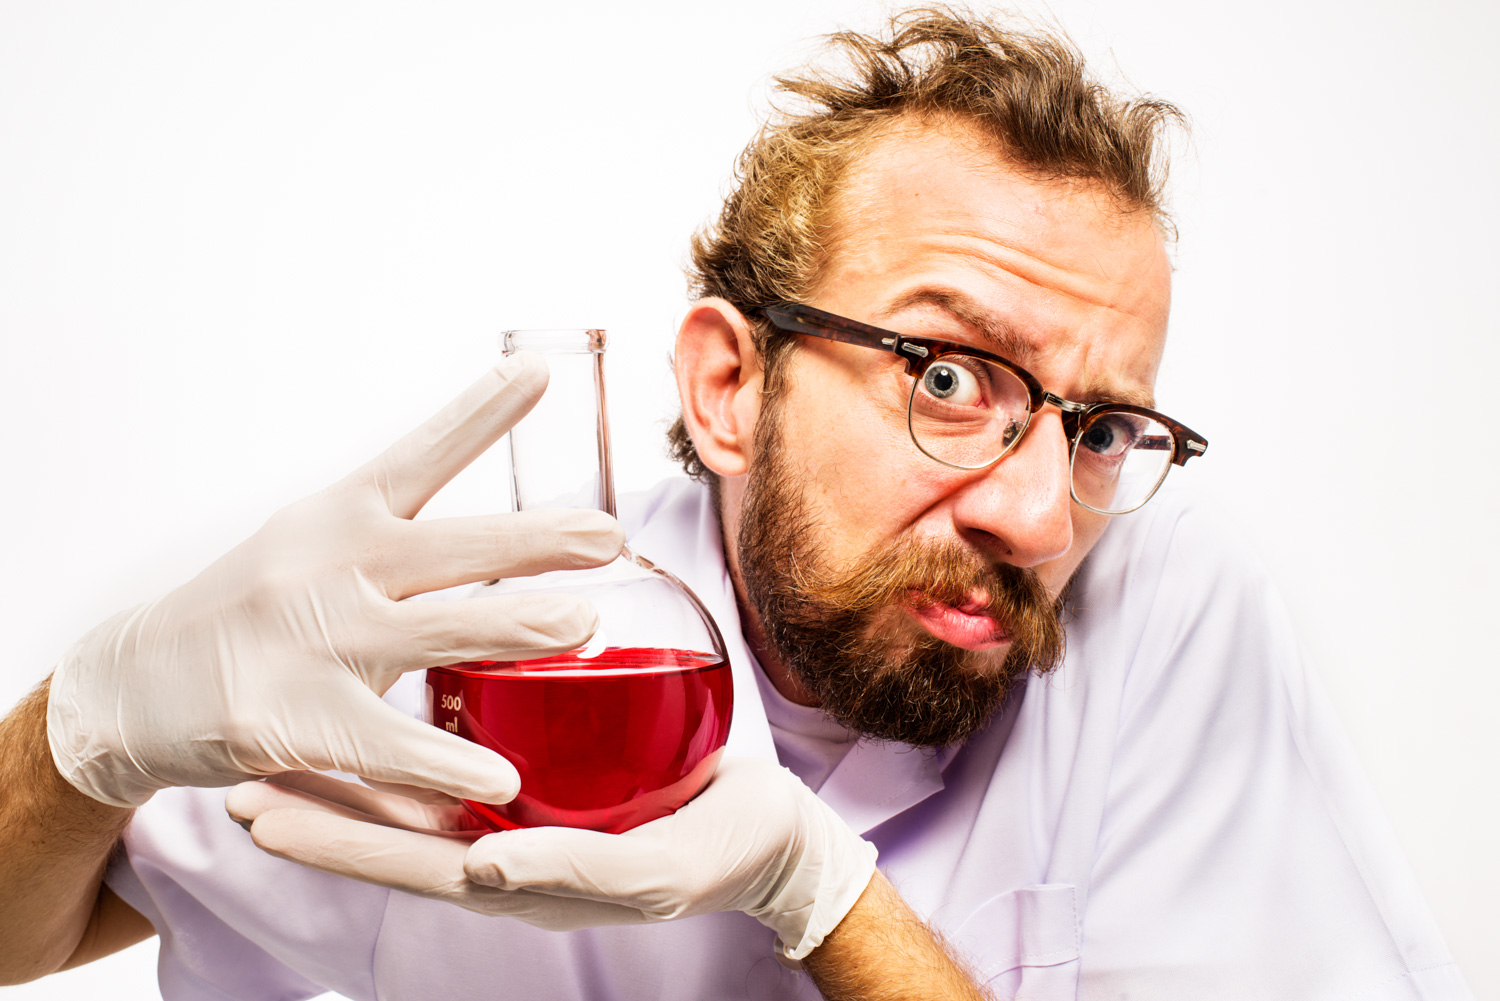 21 Tips For Stock Photography Mad Scientist With Red Liquid